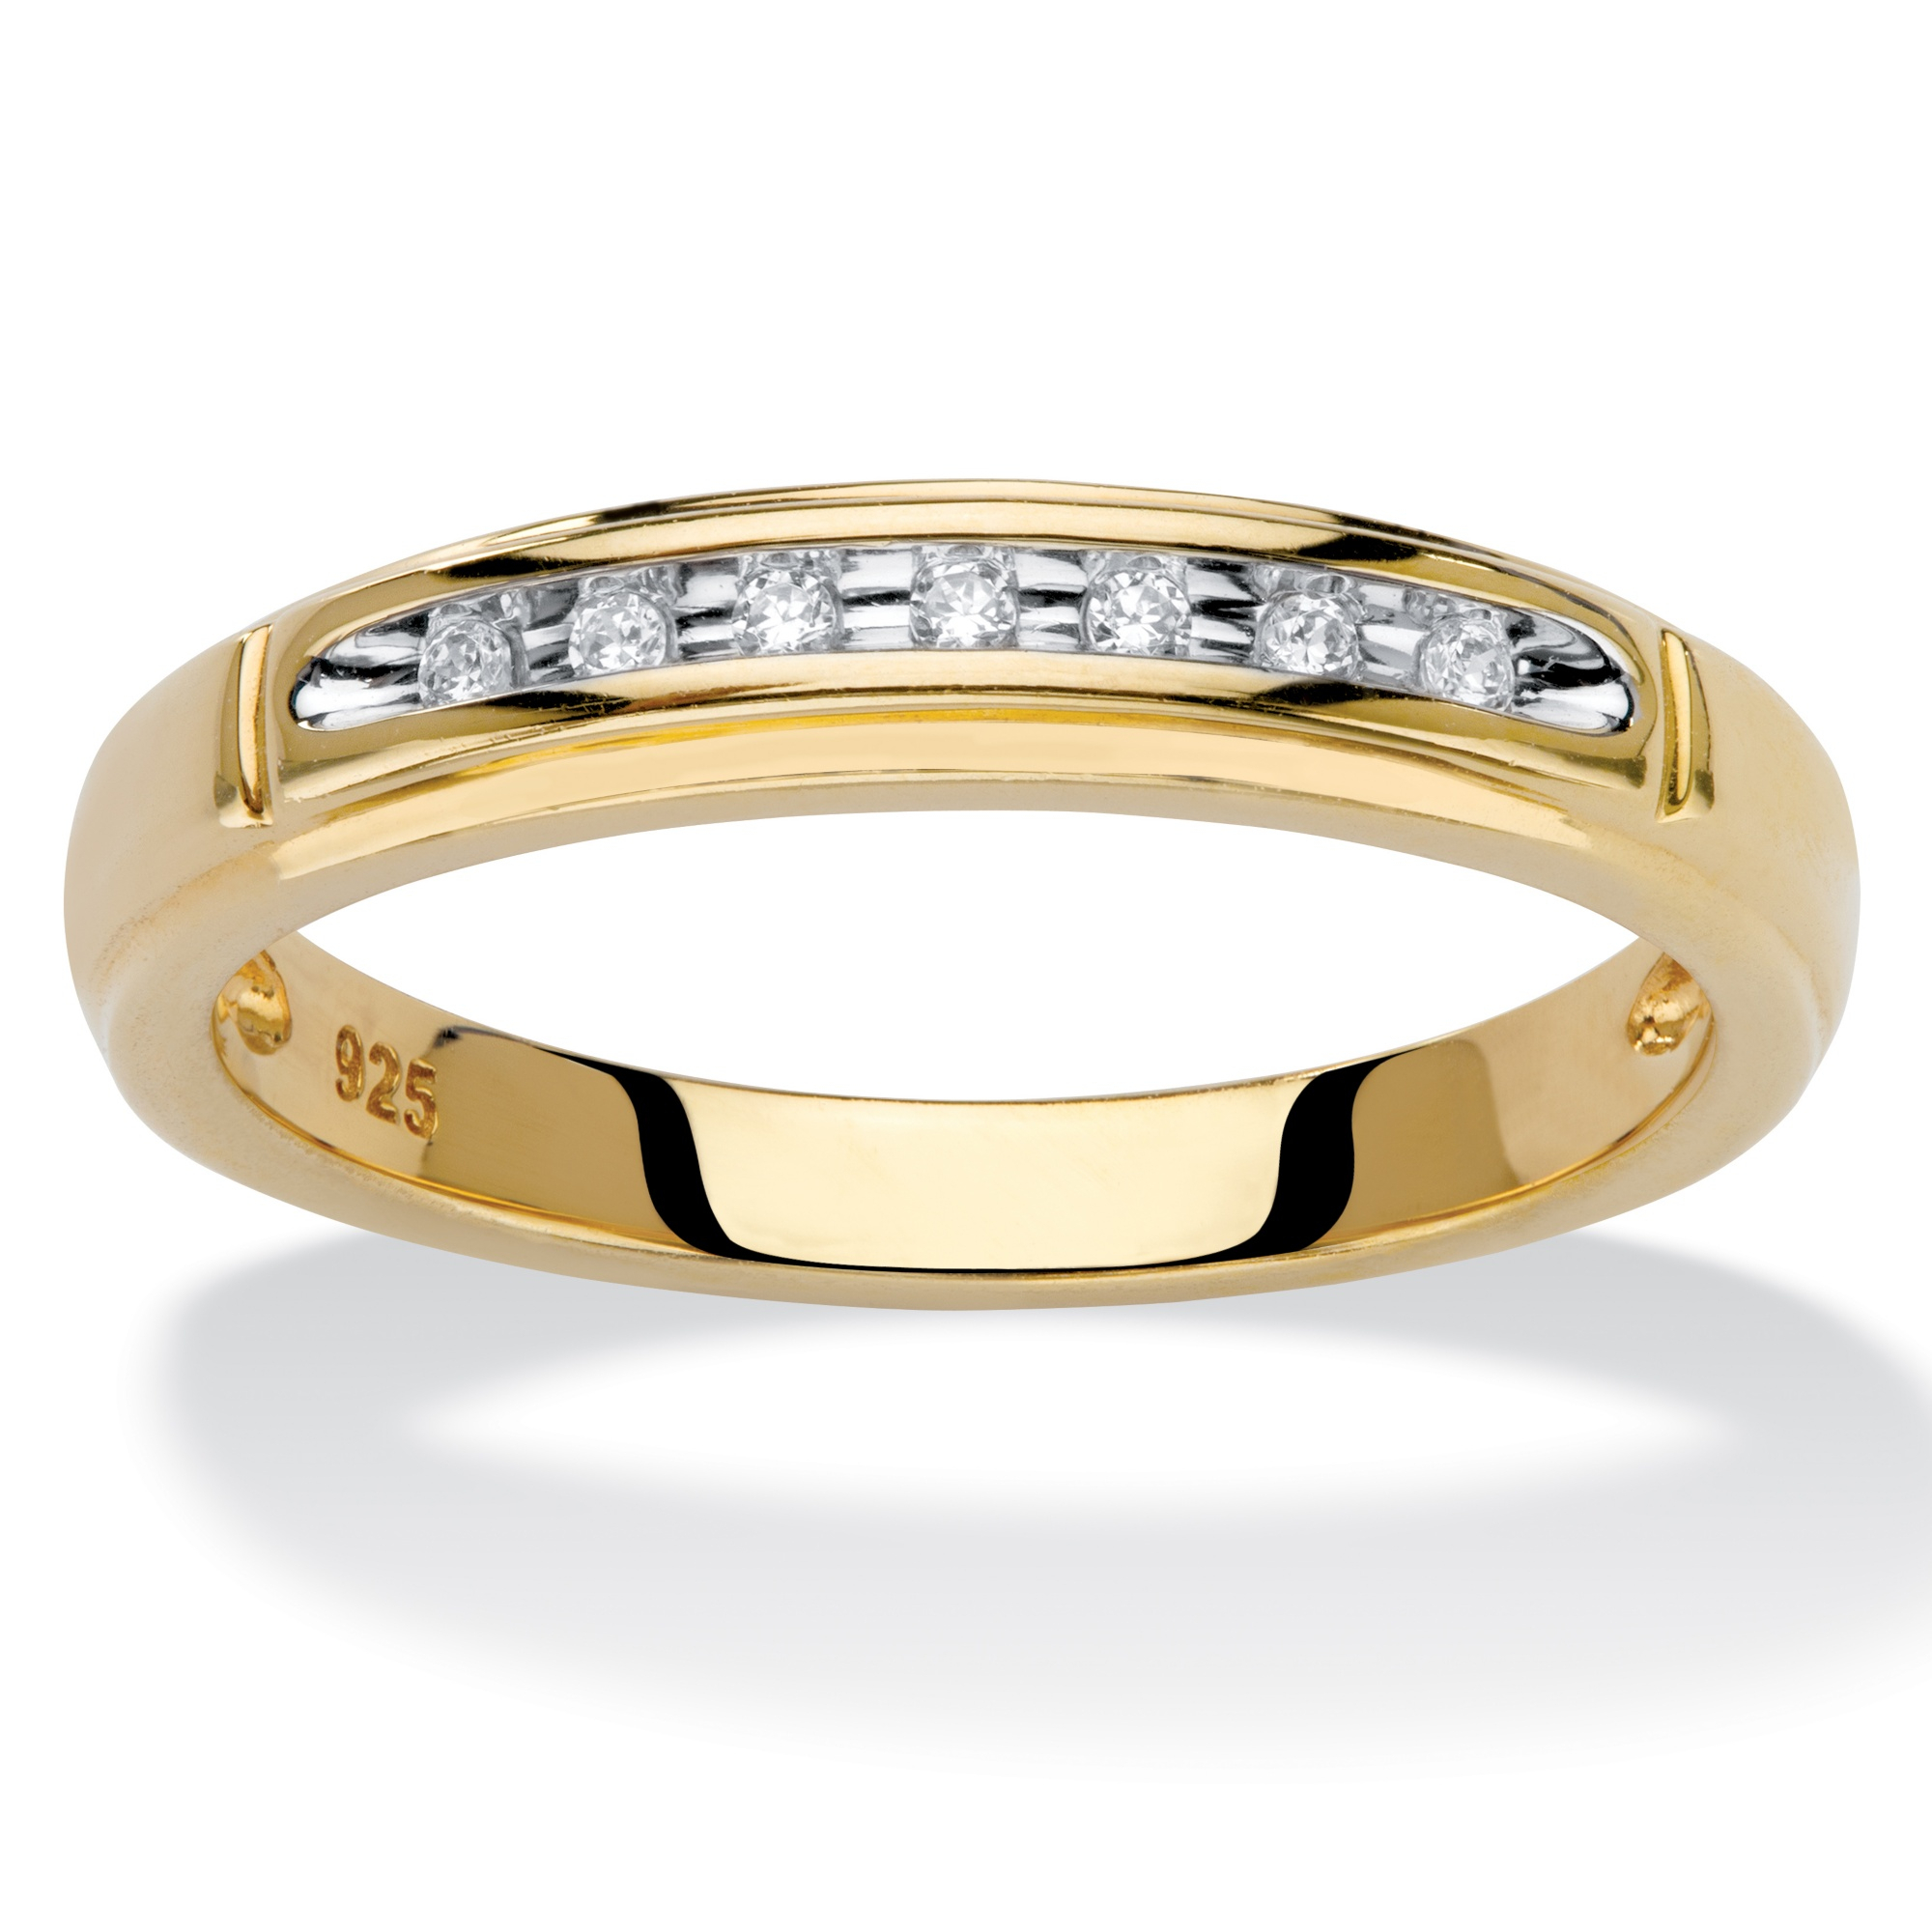 Diamond Accent Single Row Wedding Band In 18K Gold Over Intended For Most Recent Diamond Accent Anniversary Bands In Sterling Silver (Gallery 20 of 25)